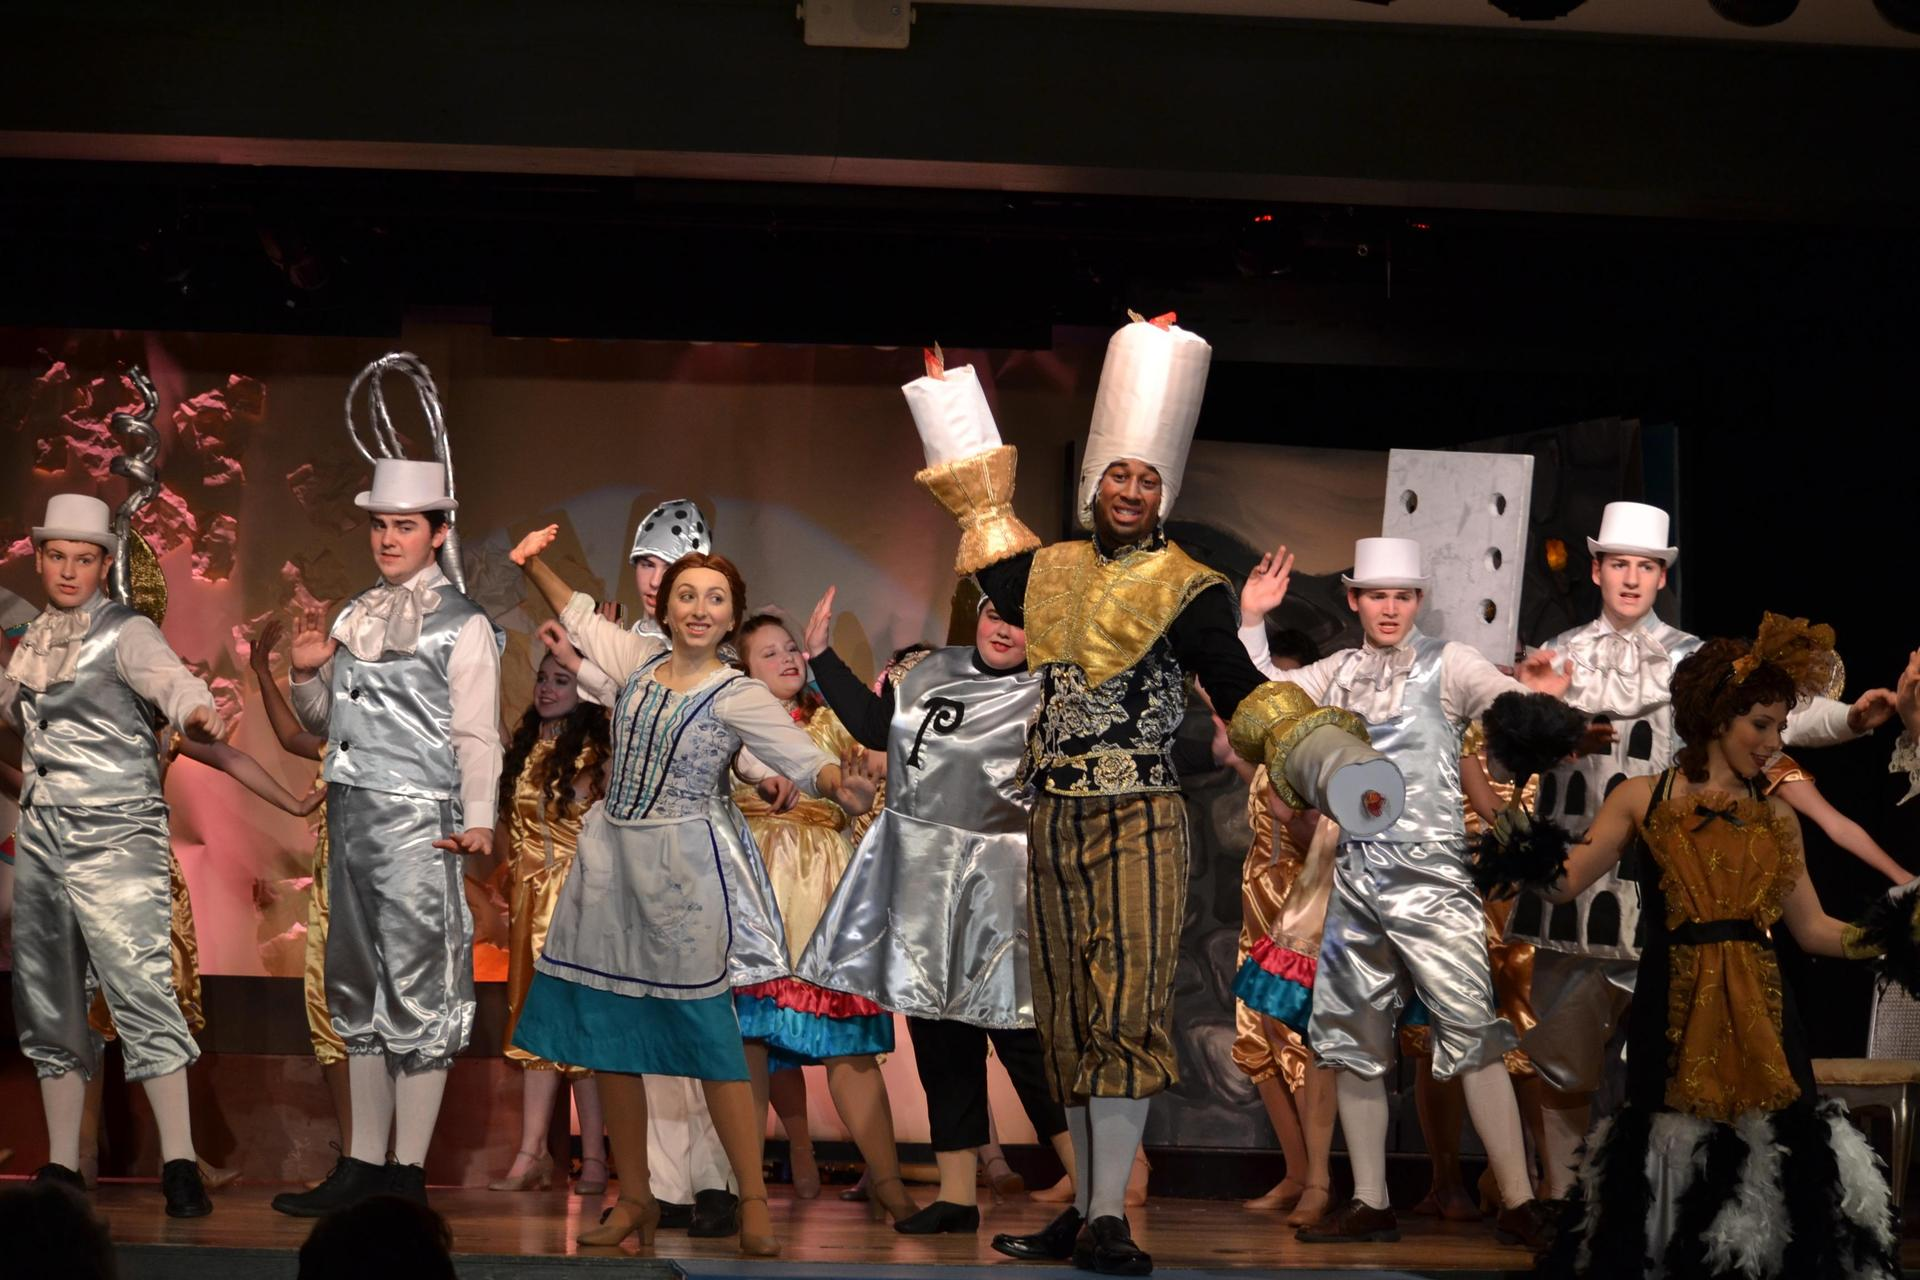 Lumiere played by Dom, leads the cast of the spring musical in 'Be Our Guest'